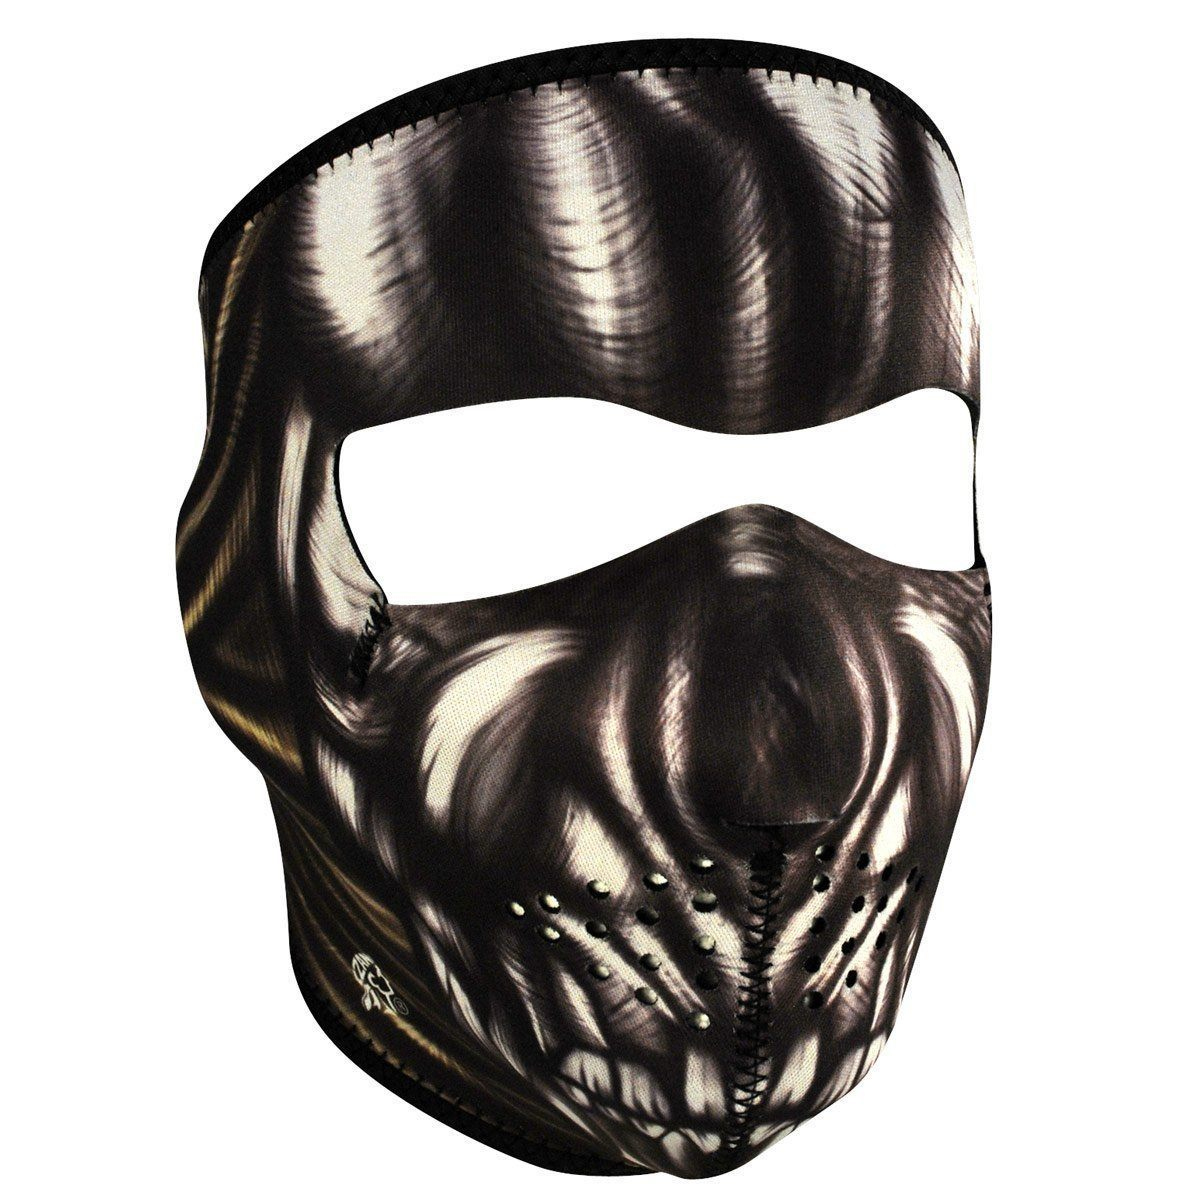 Zan Headgear Ancient Skull Neoprene Face Mask